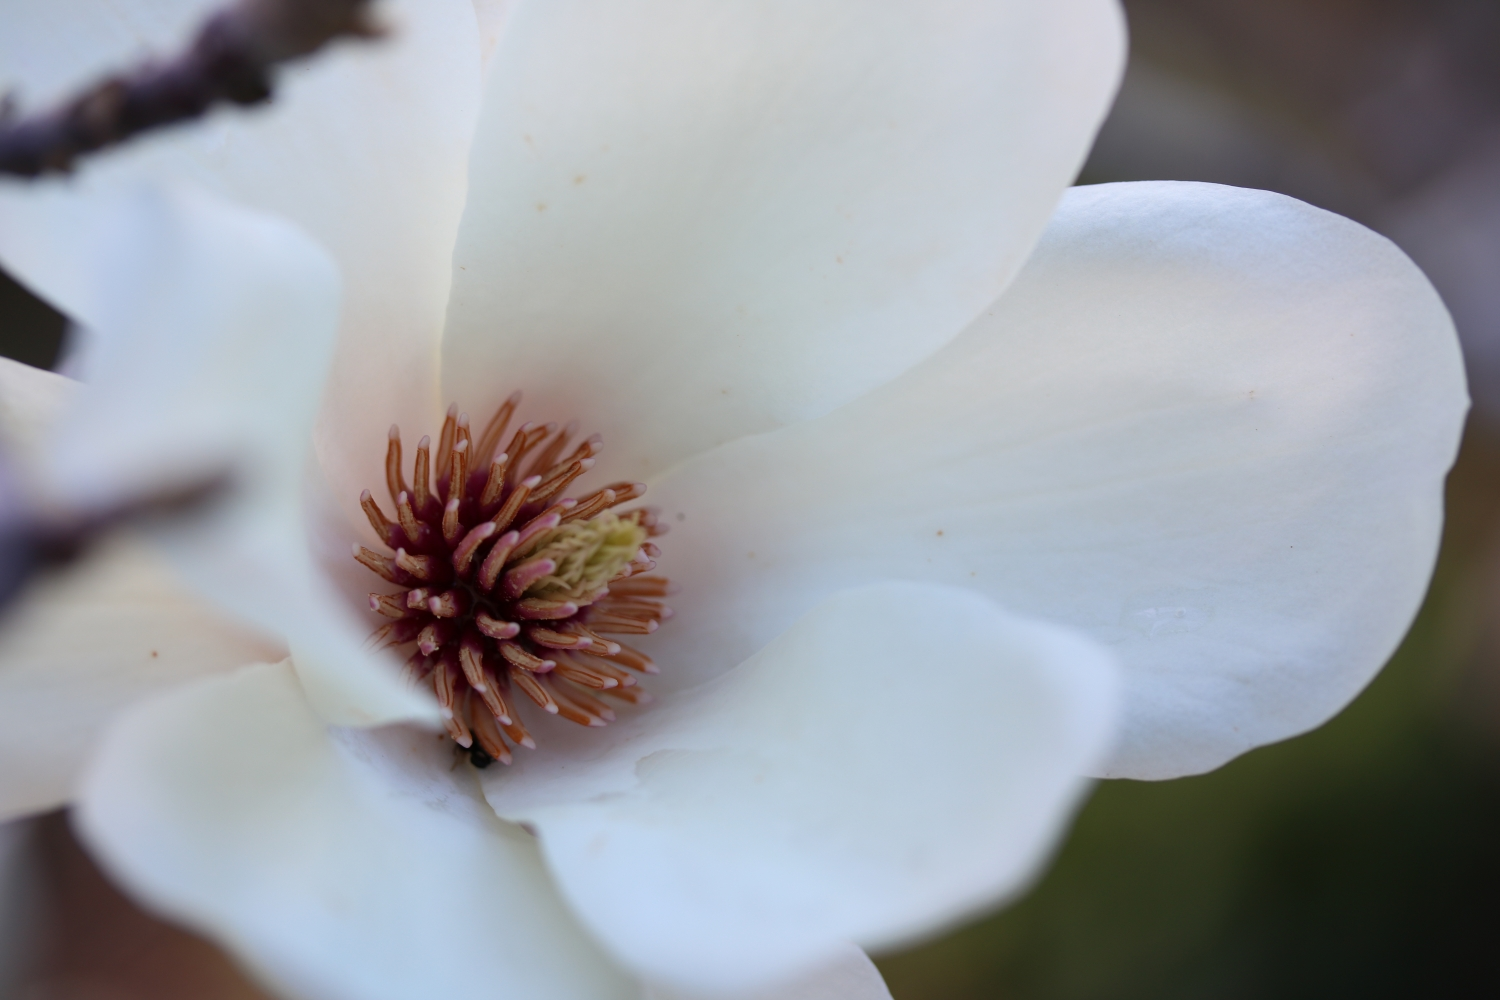 A close up image of the Stamens and carpels of the Magnolia denudata at Vaucluse House